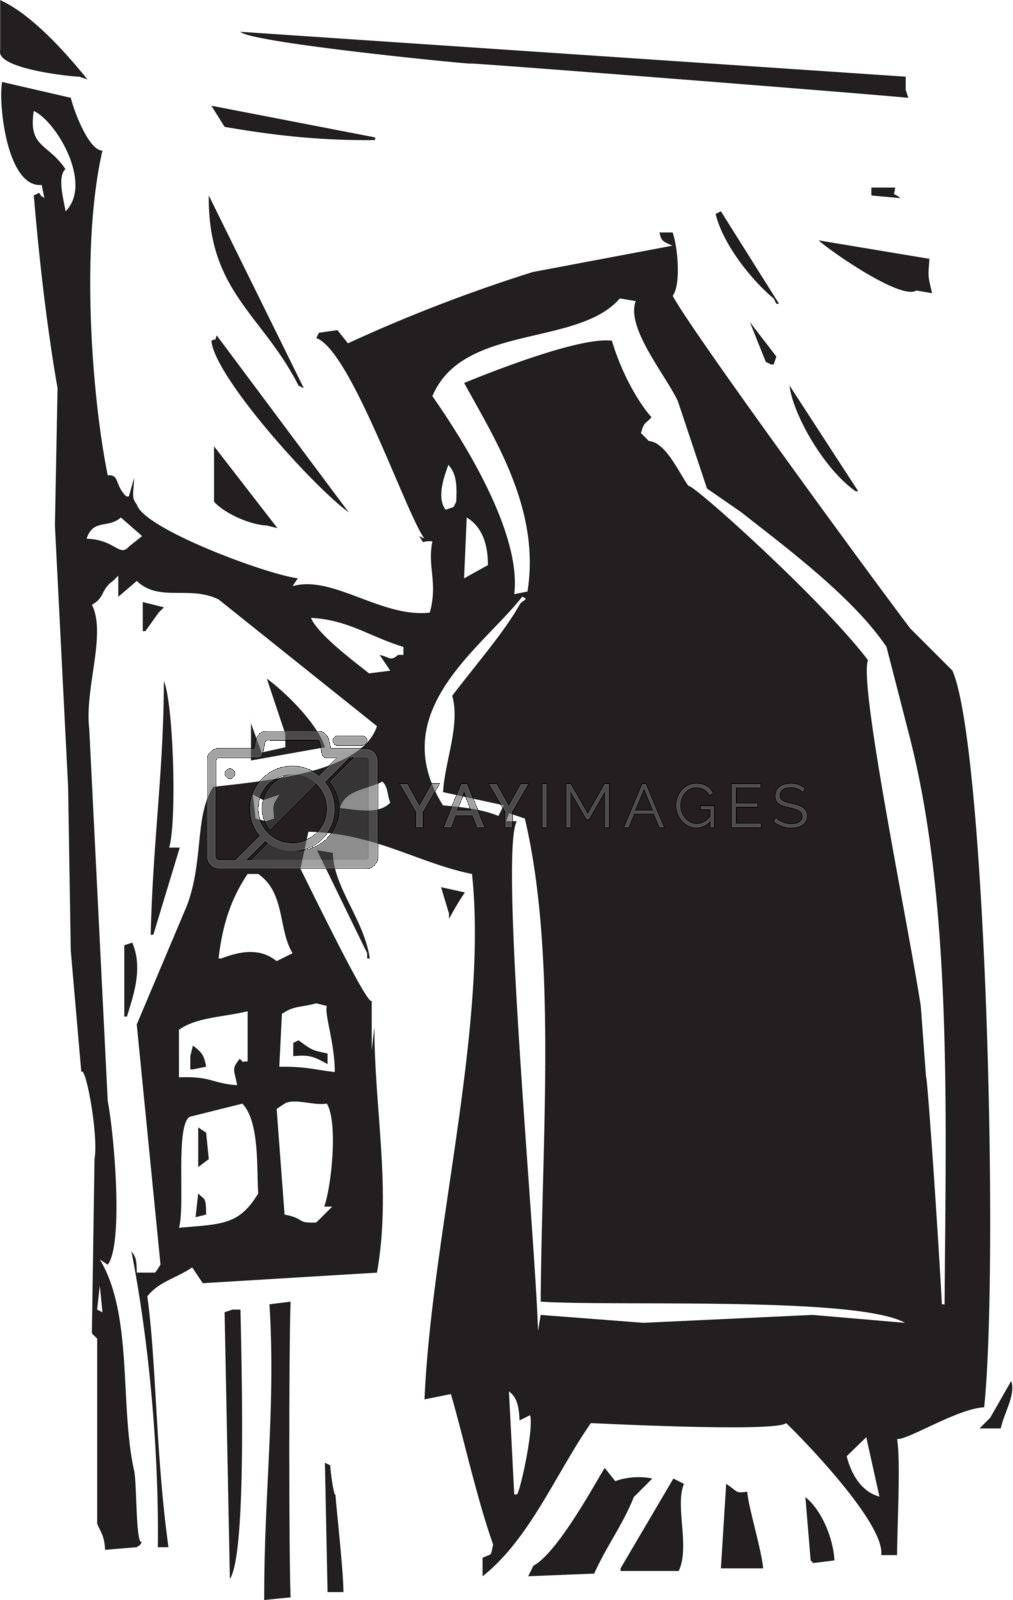 Woodcut expressionist style image of an old woman with a staff and lamp.